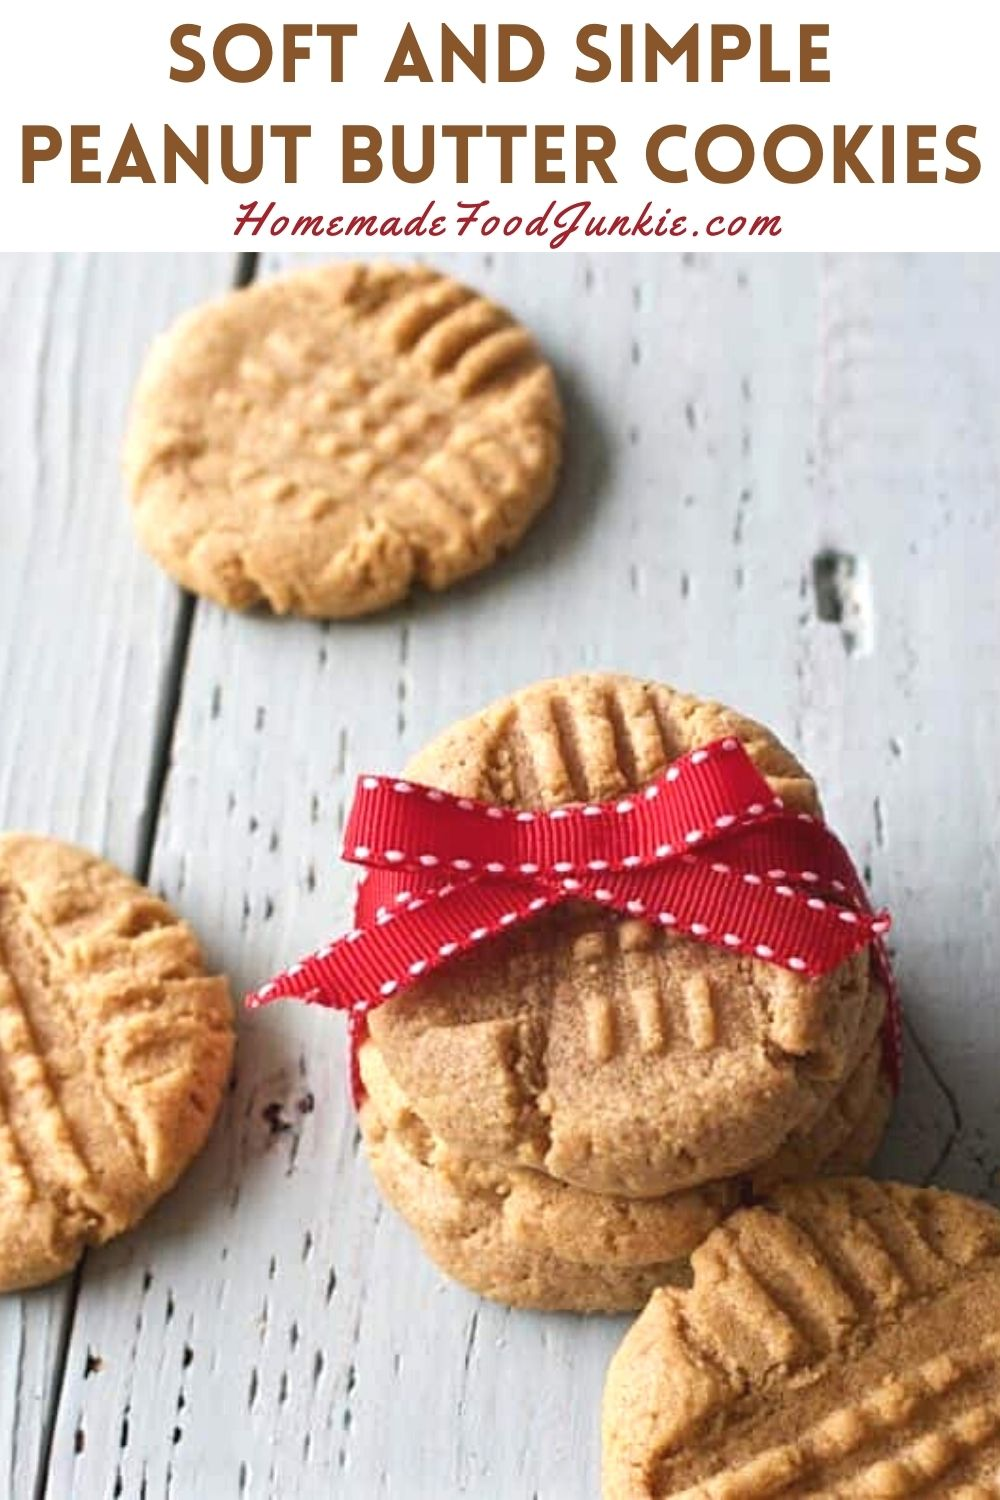 Soft and simple peanut butter cookies-pin image